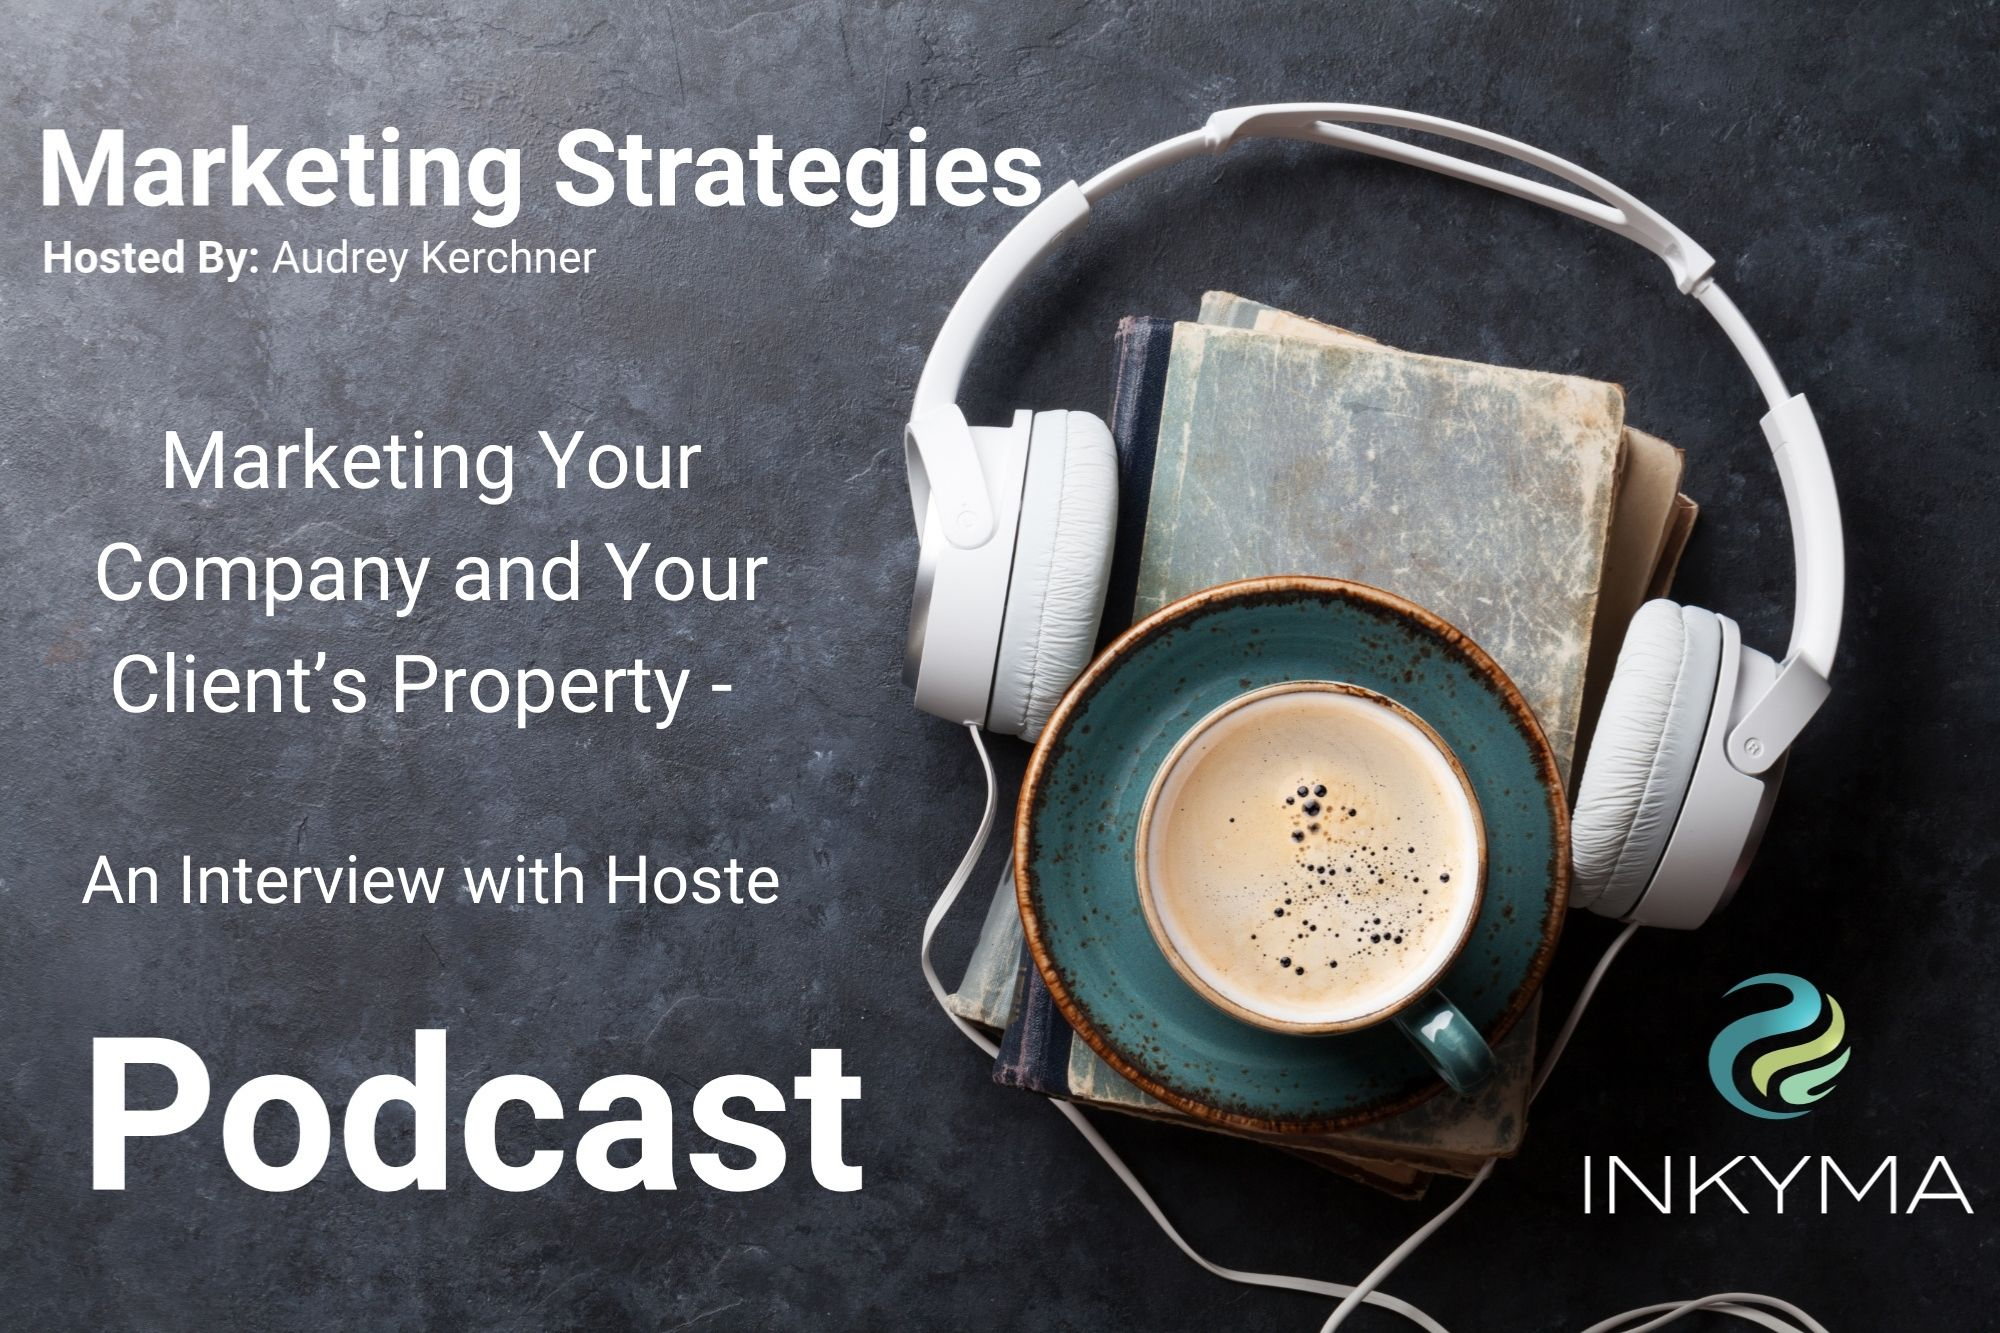 Marketing Your Company and Your Client's Property